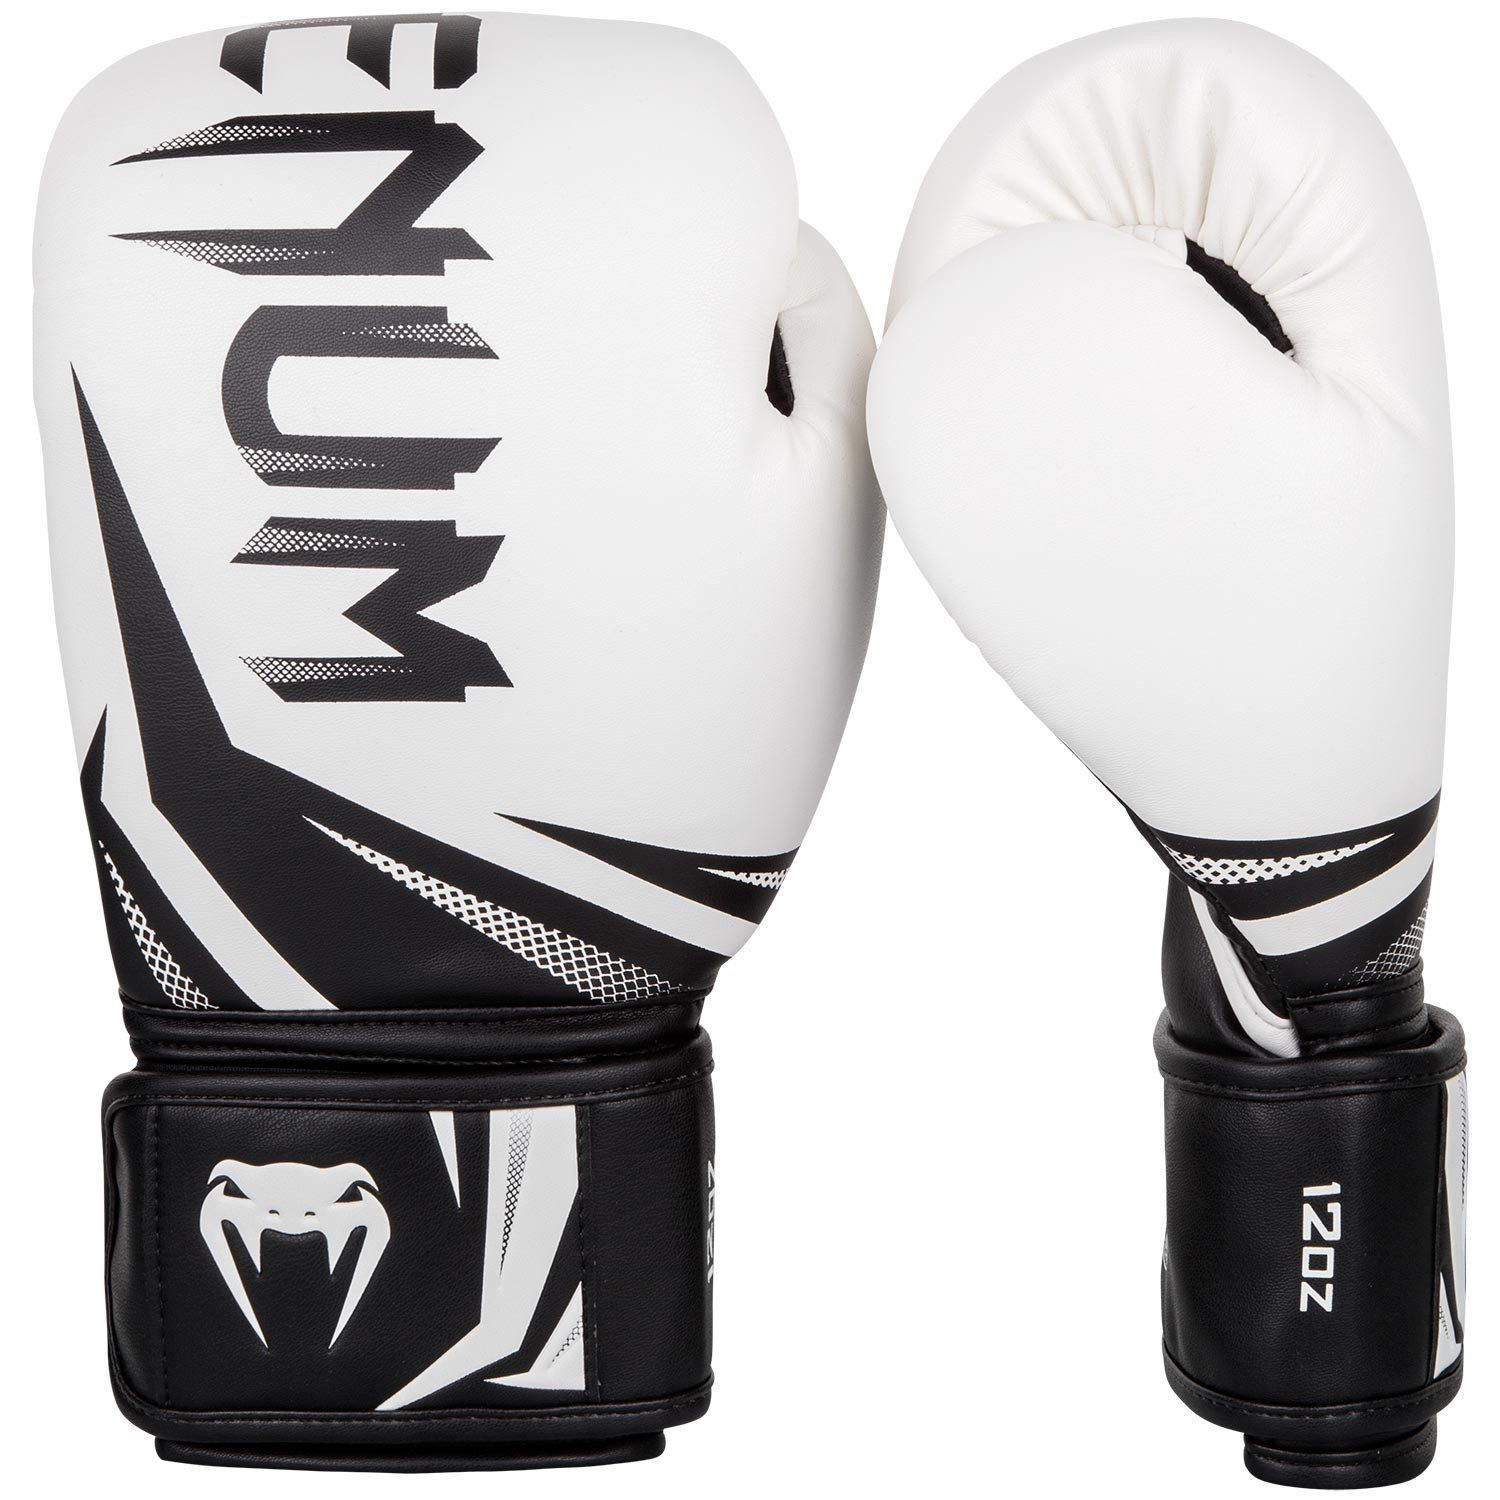 Venum Challenger 3.0 Boxing Gloves - White/Black